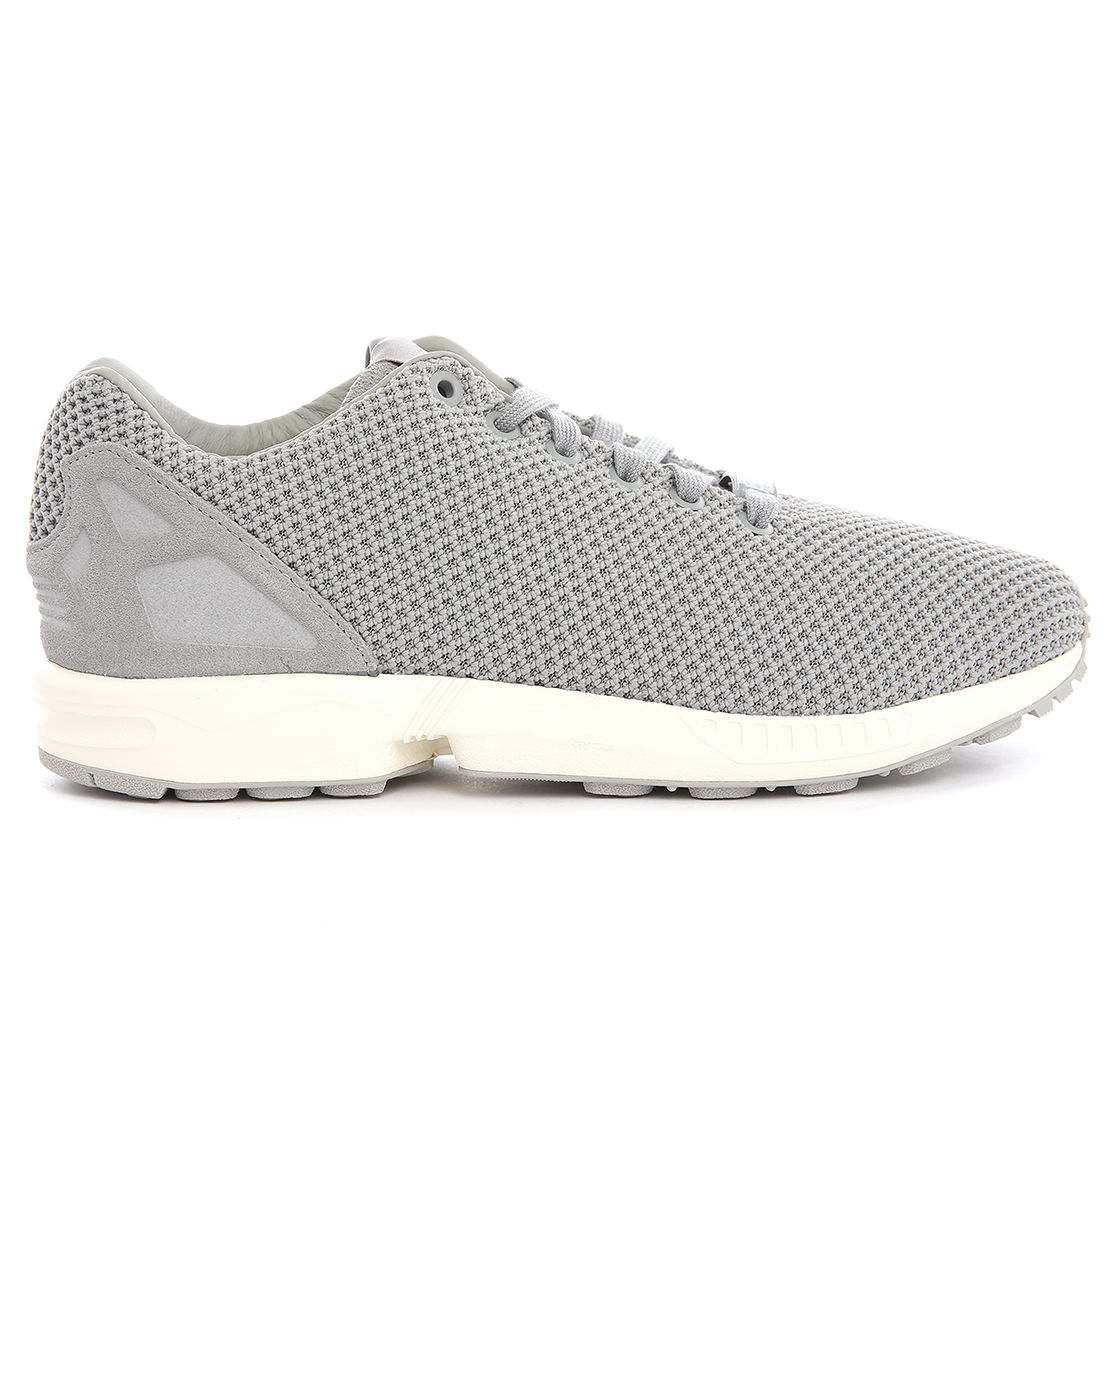 adidas originals zx flux grey mesh sneakers in gray for. Black Bedroom Furniture Sets. Home Design Ideas